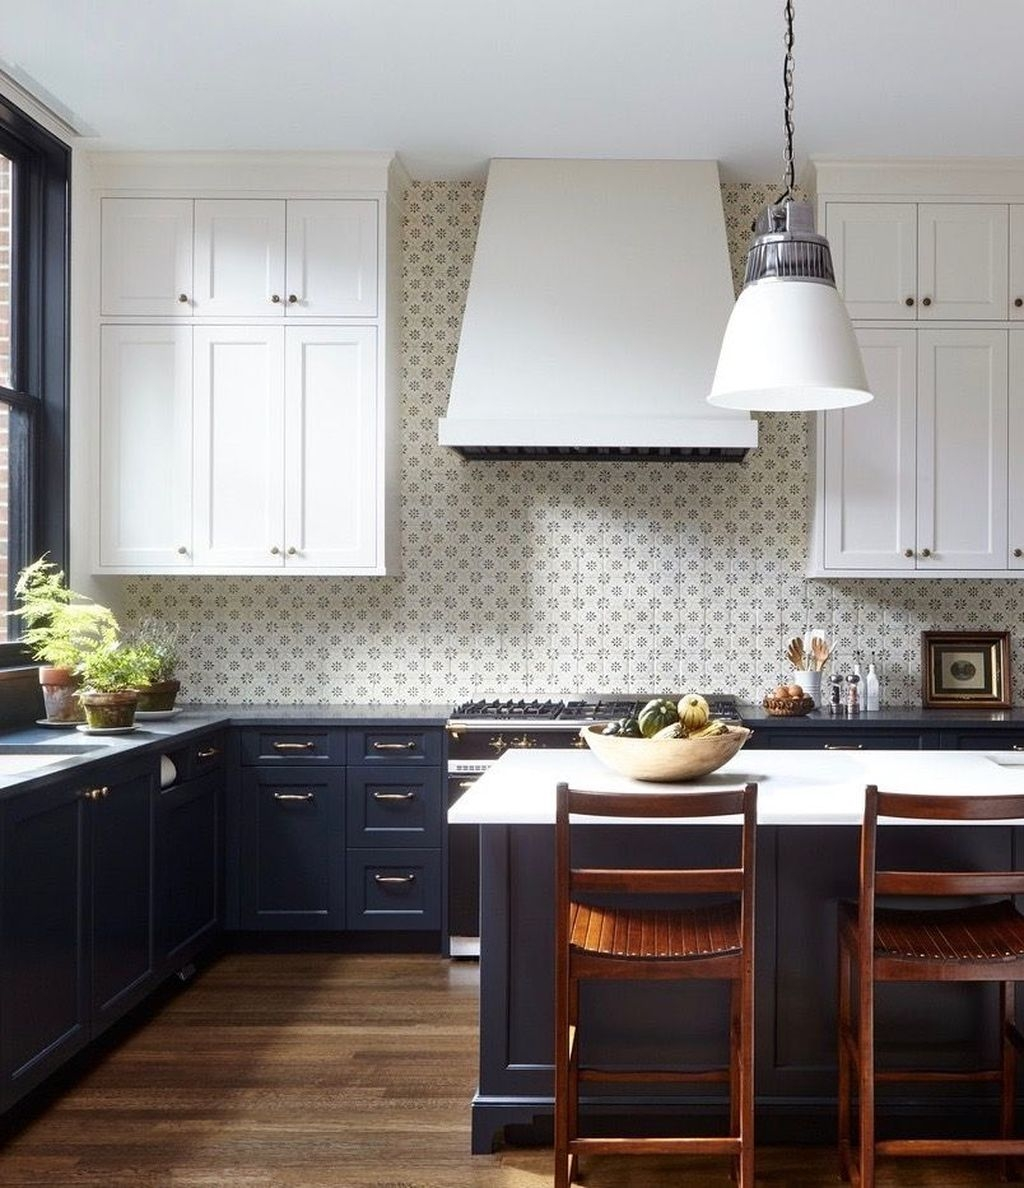 Incredible Black And White Kitchen Ideas To Try20